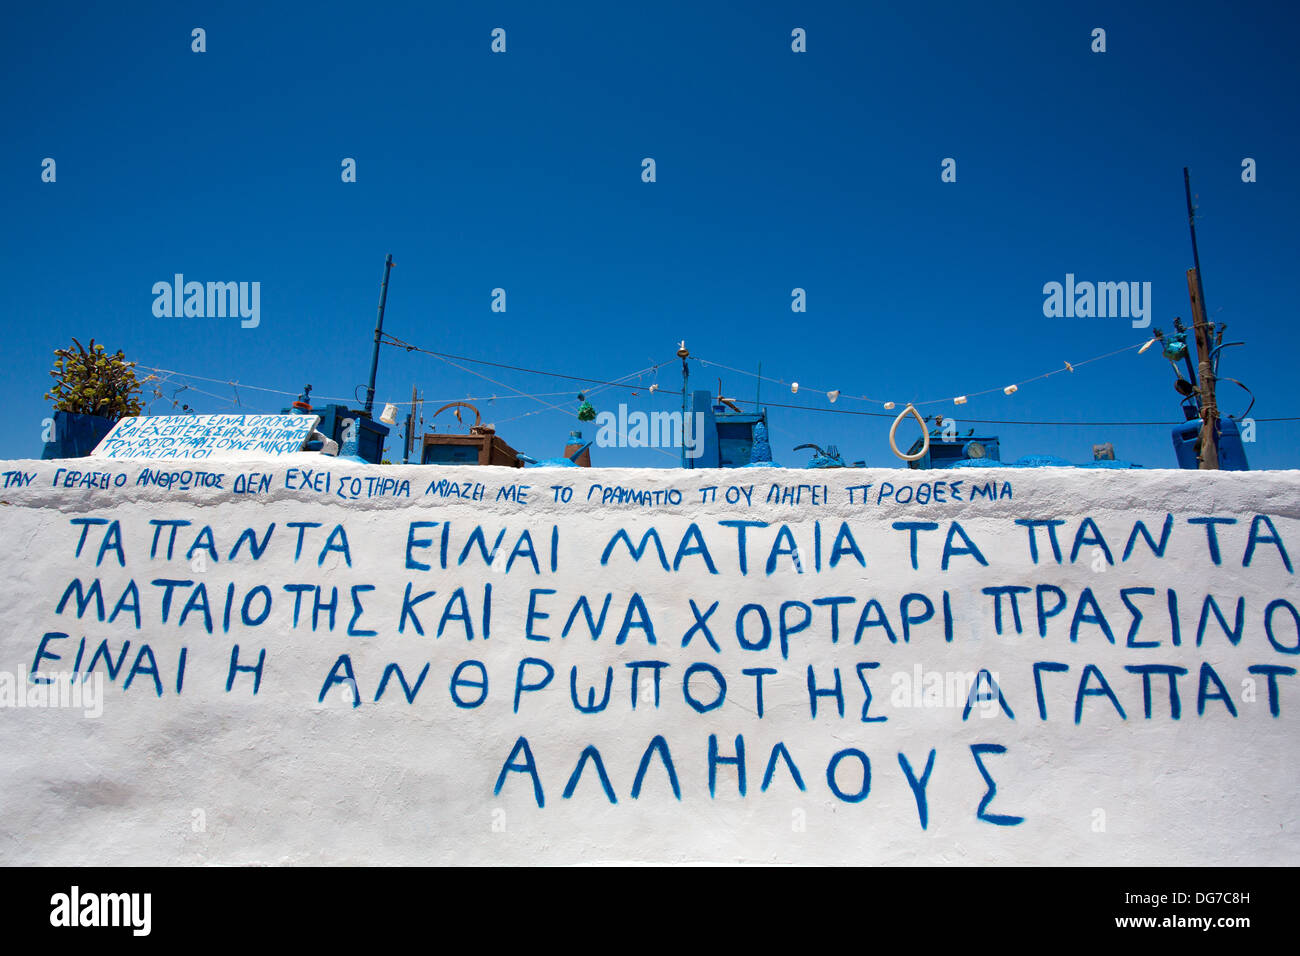 Artistic installation on a  roof of a house in Folegandros, the installation is made of strange objects all painted in blue - Stock Image